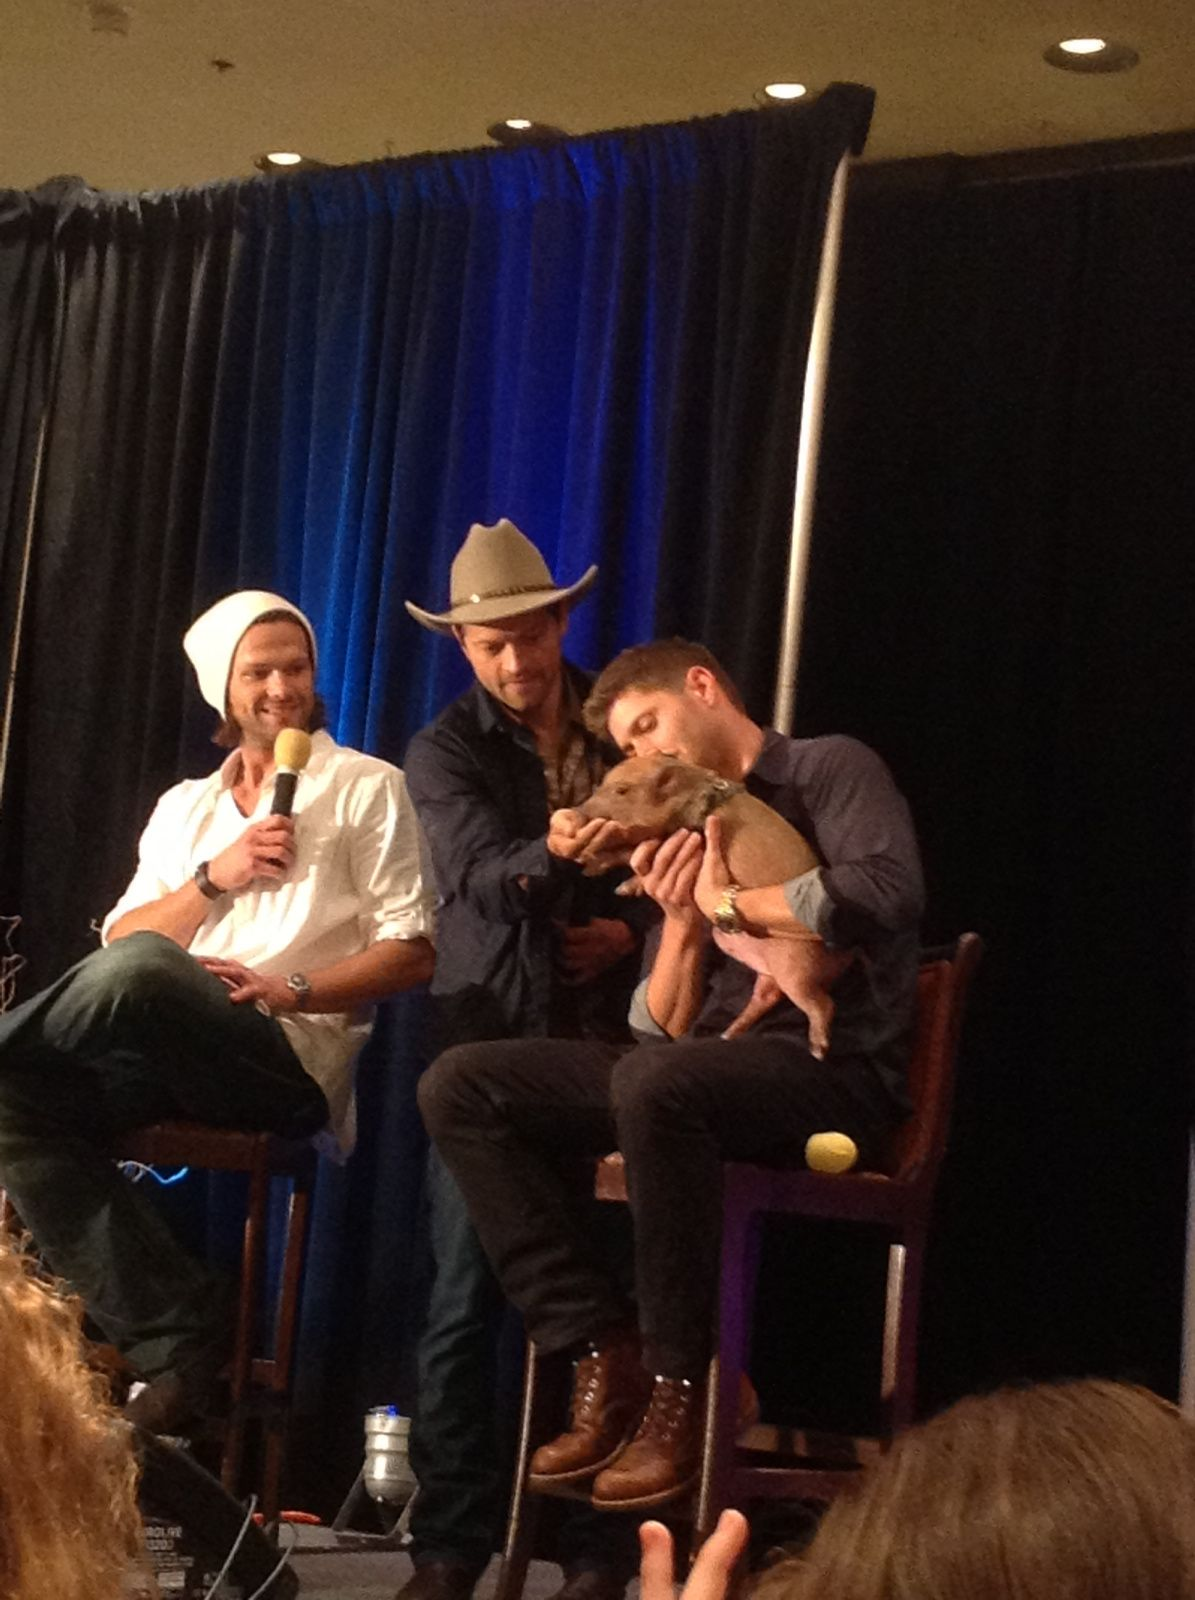 Jared Padalecki At Dallascon A Few Meet And Greet Excerpts And